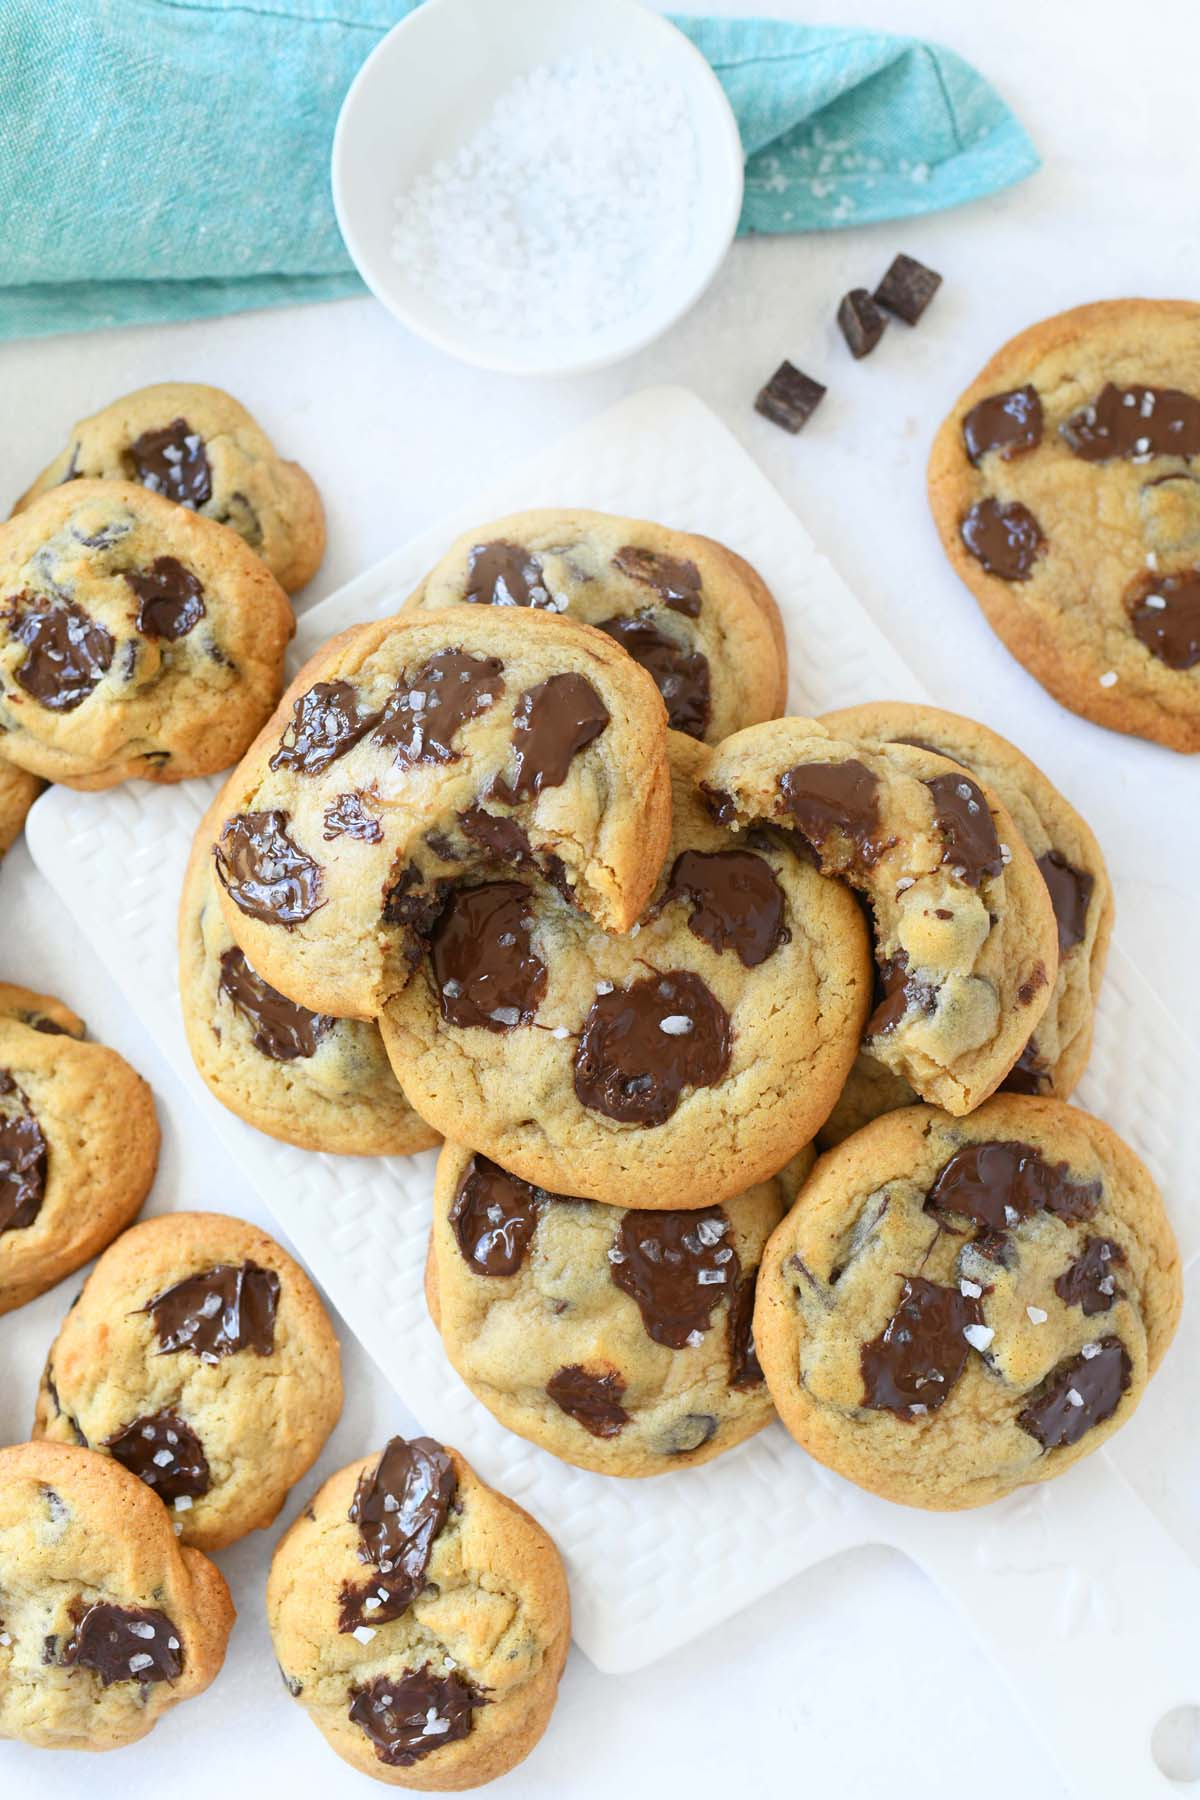 Chocolate chunks cookies with sea salt with a bite taken out of it.